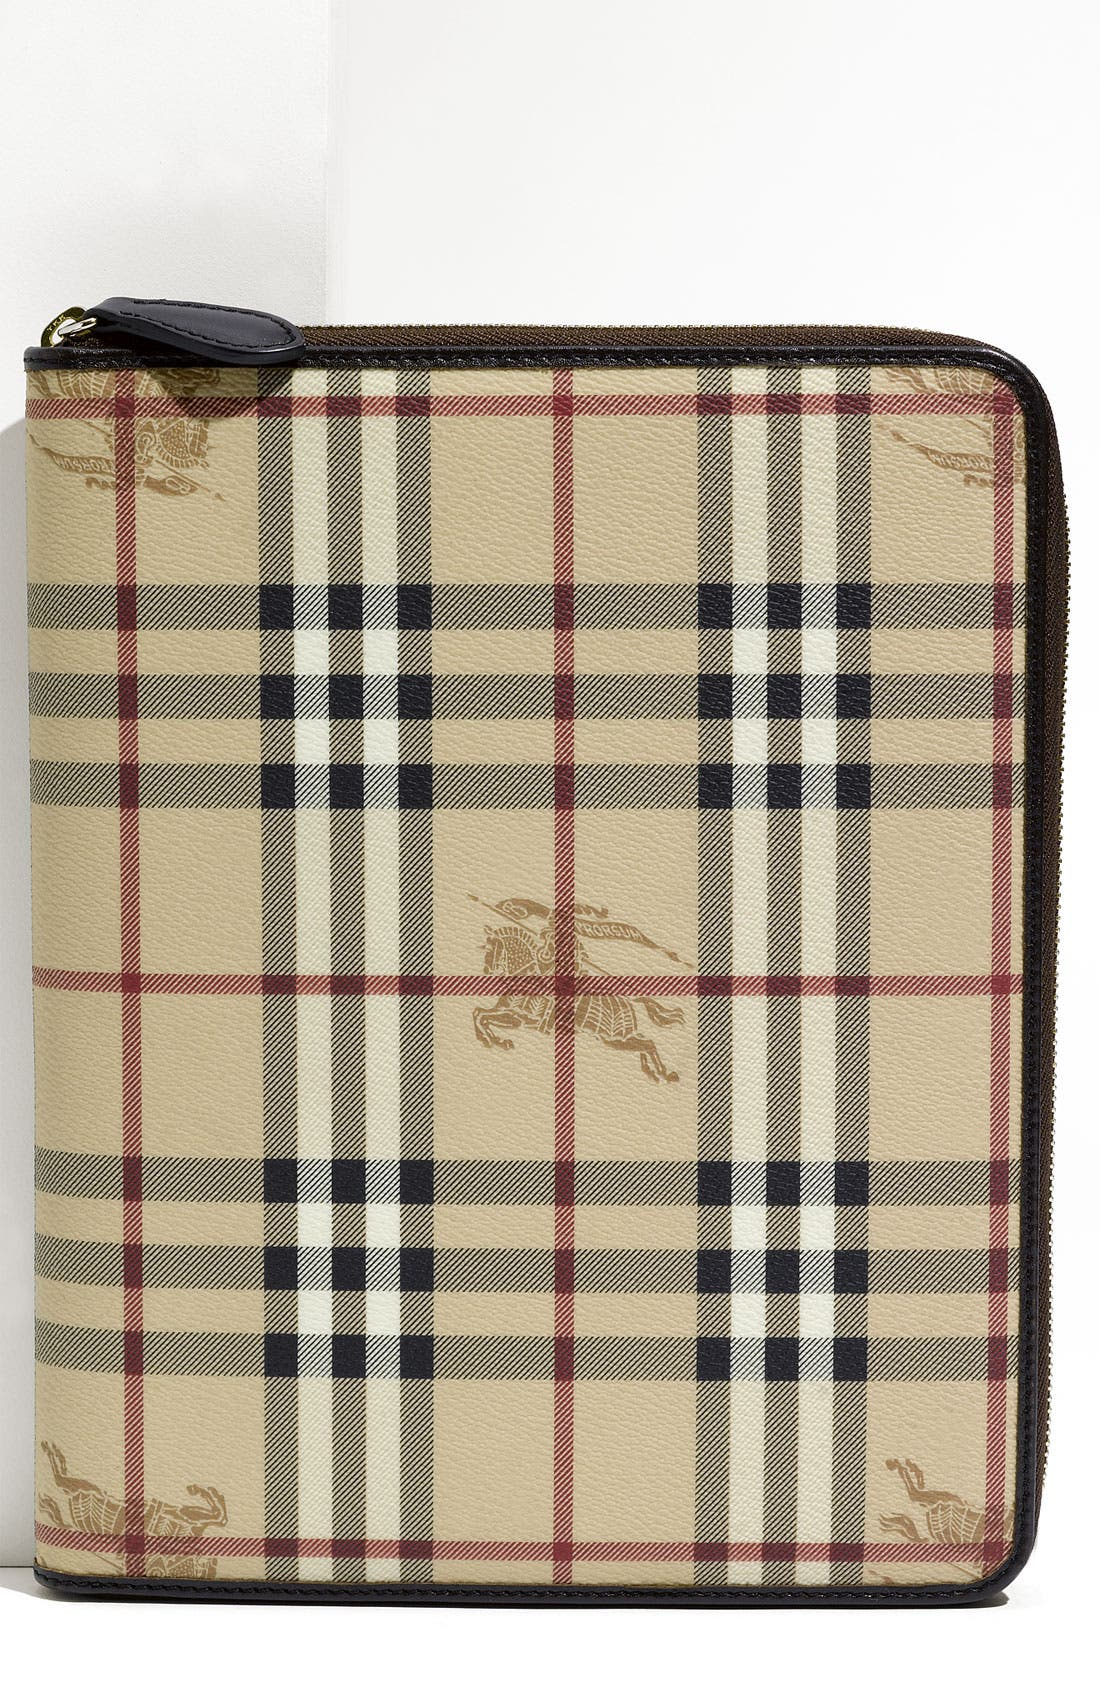 Main Image - Burberry 'Haymarket Check' Zip Around iPad 2 Case